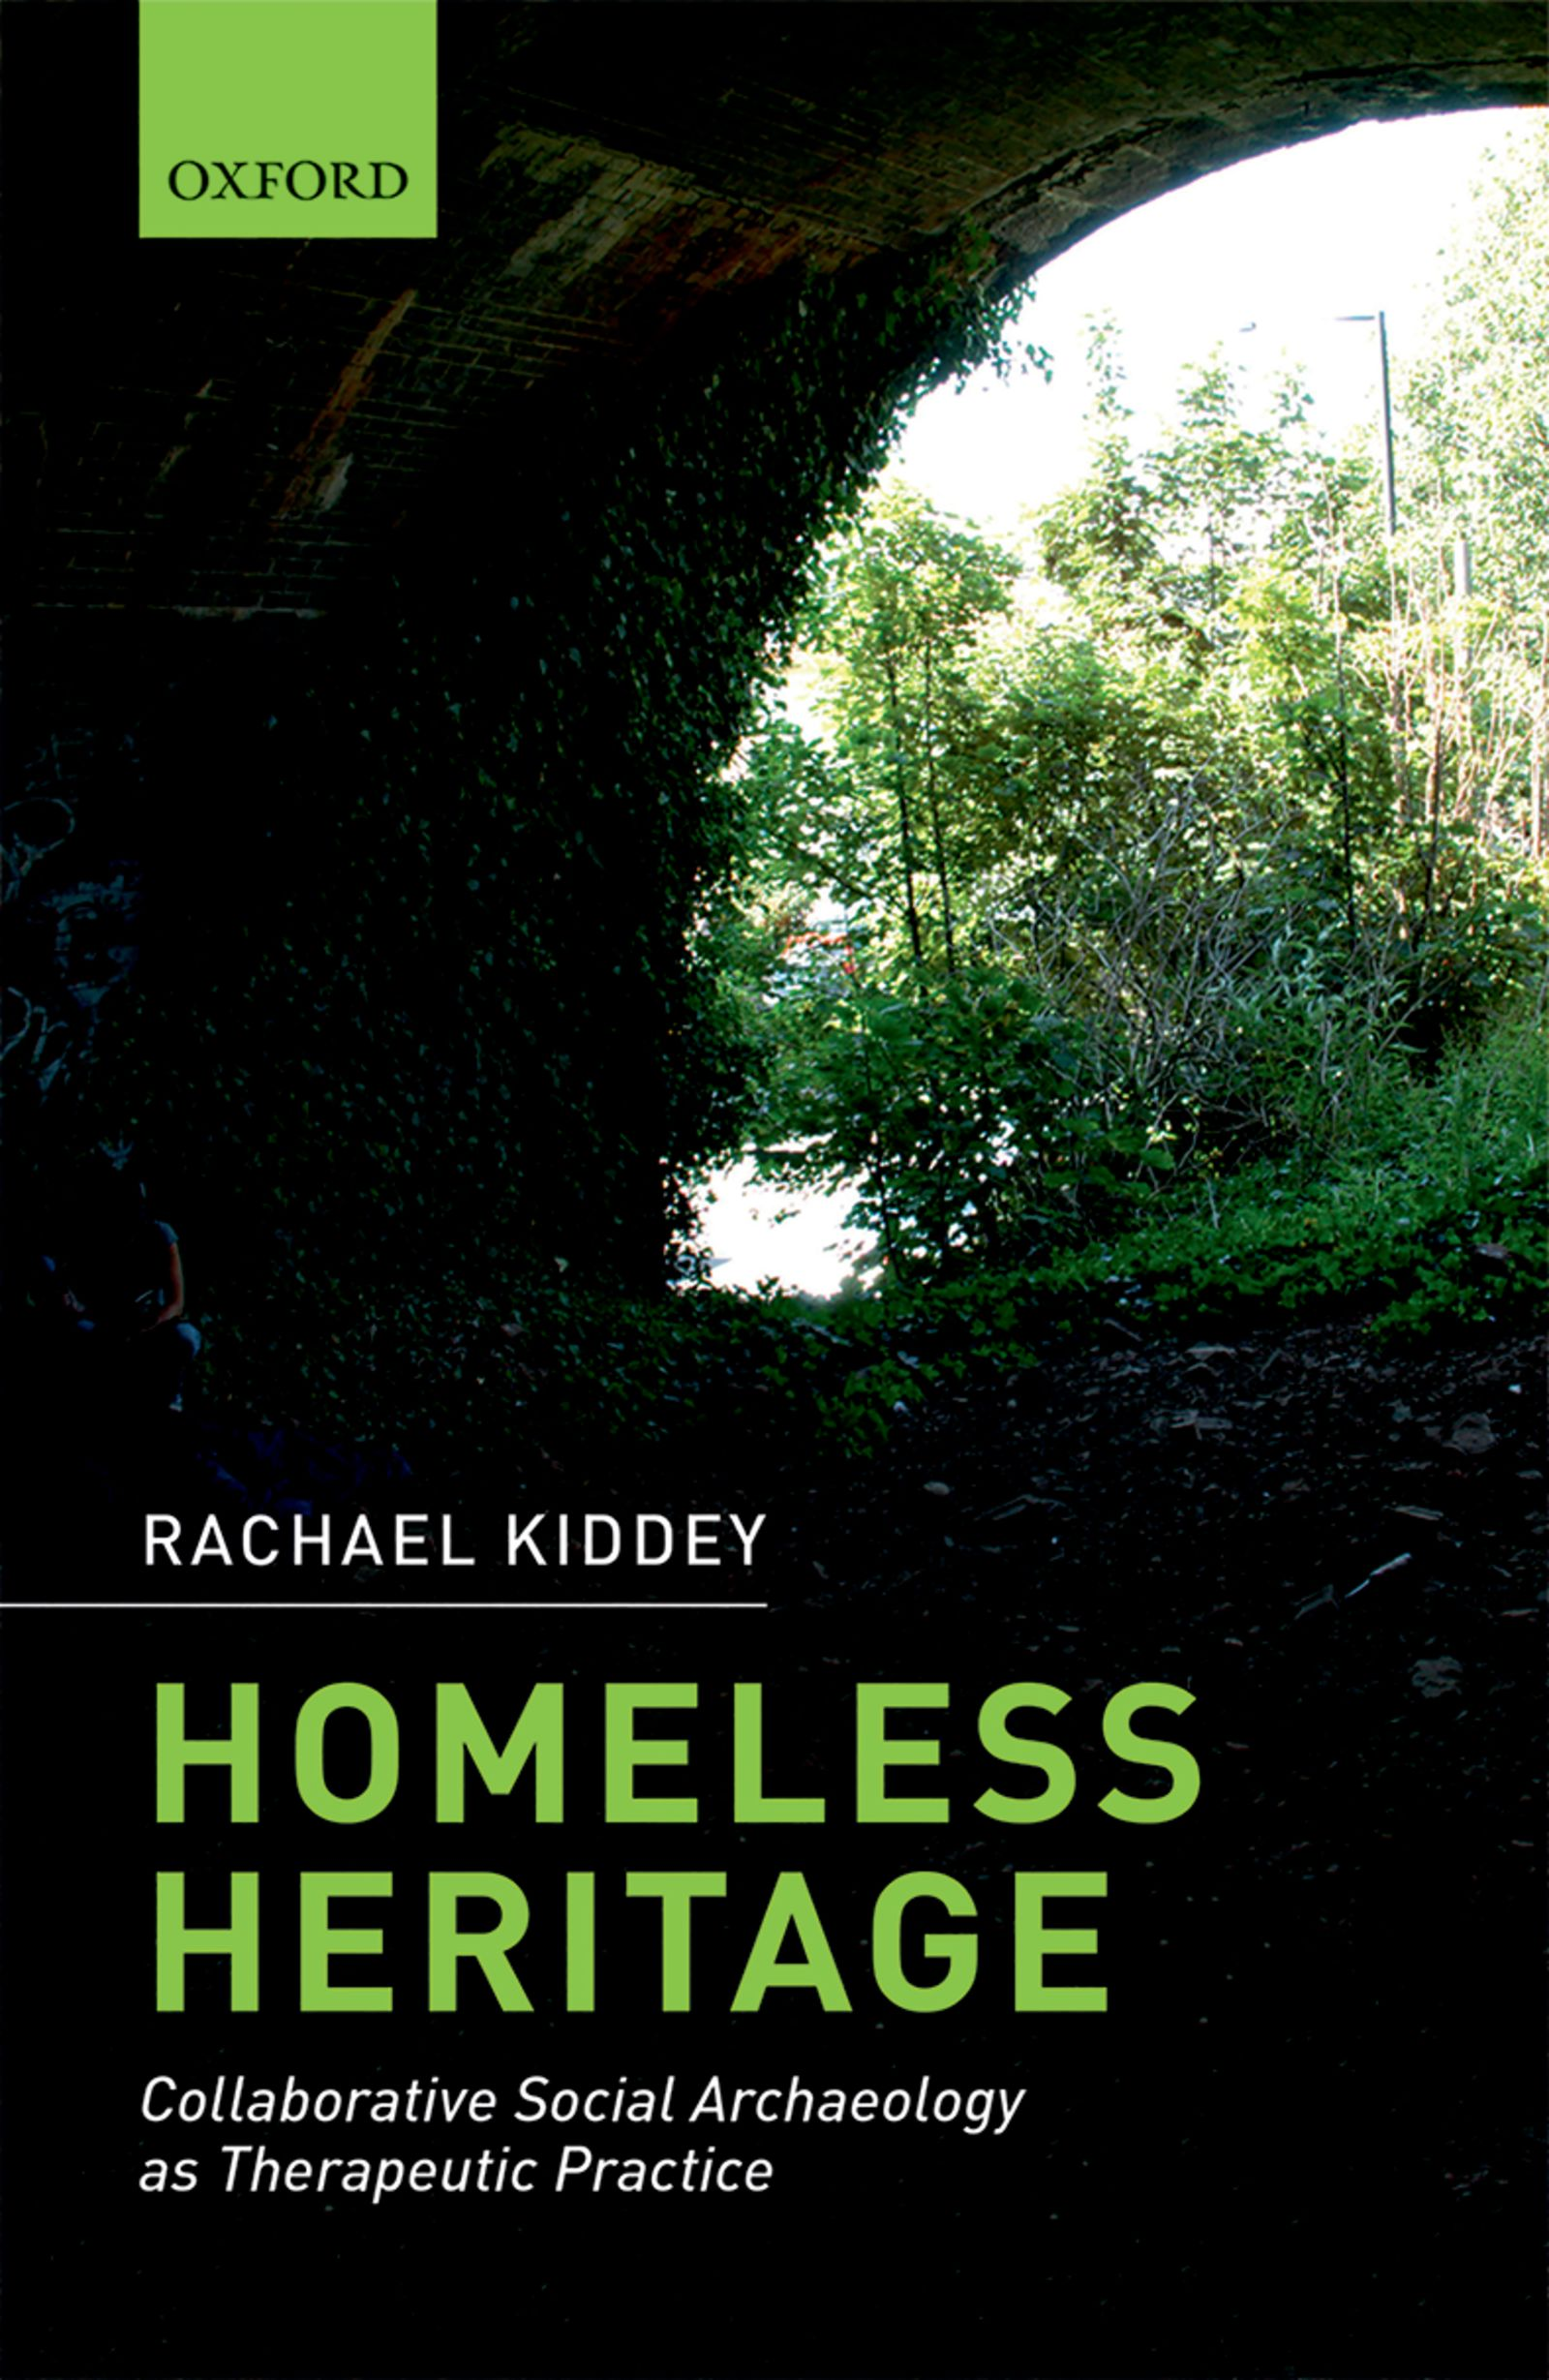 Homeless HeritageCollaborative Social Archaeology as Therapeutic Practice